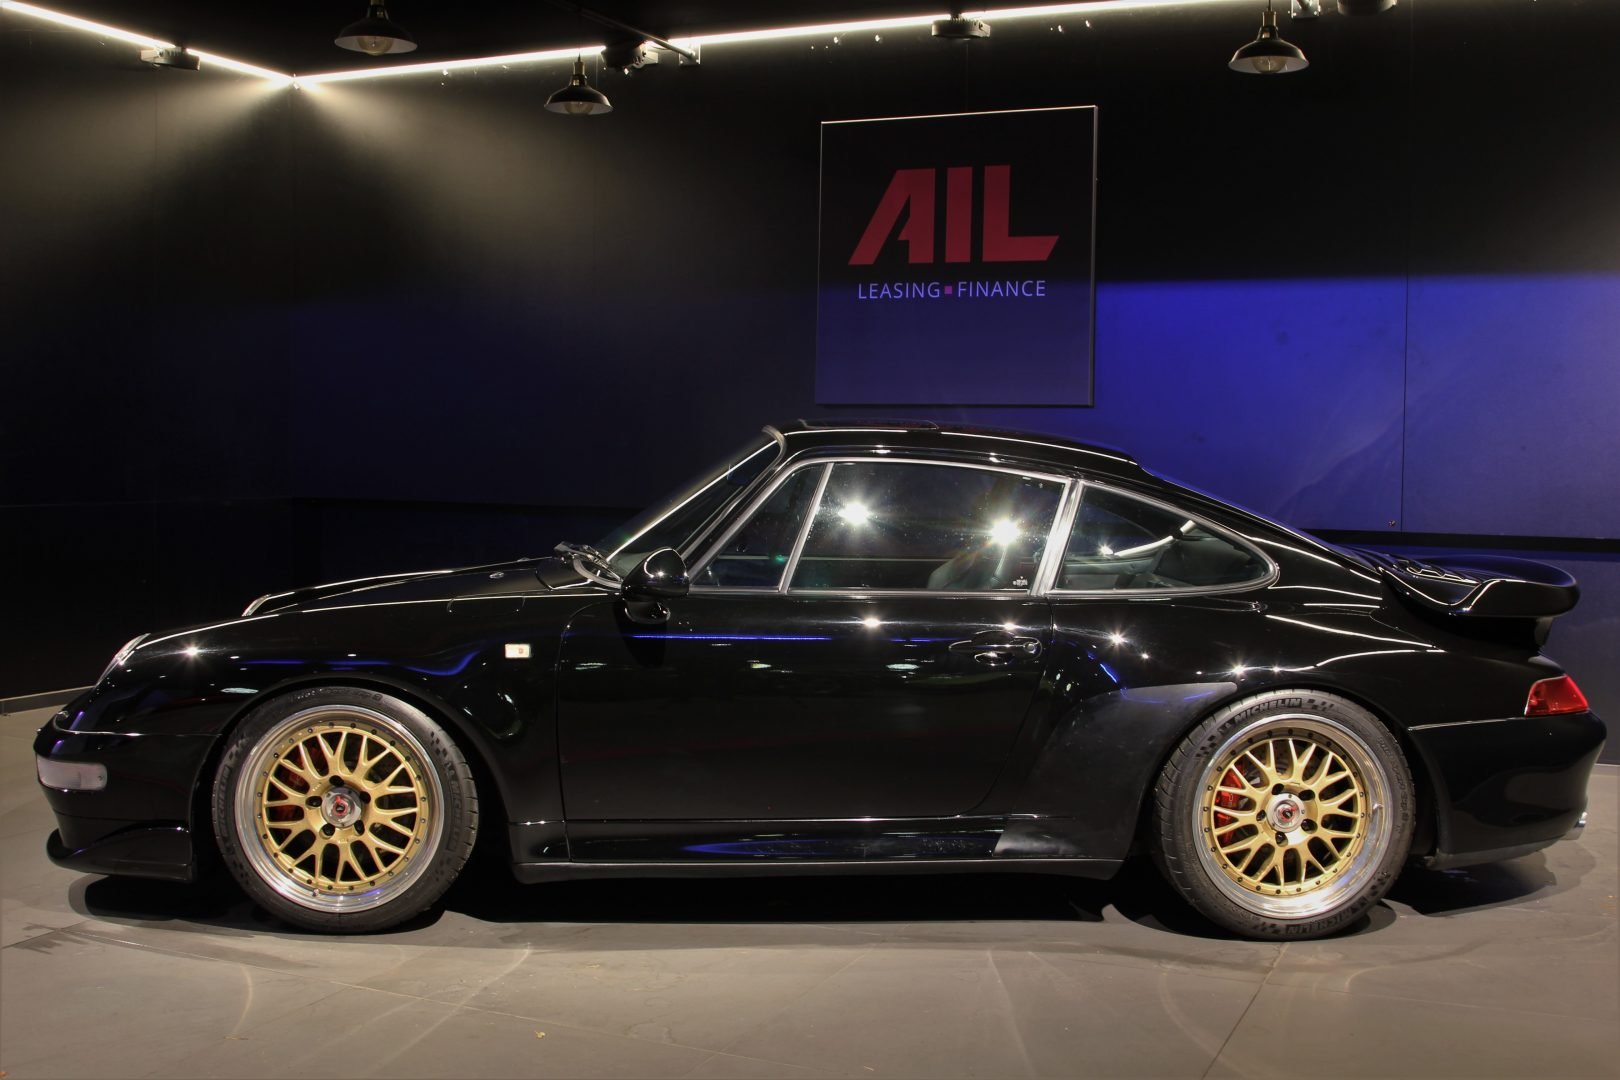 AIL Porsche 993 Turbo Carbon Paket  4